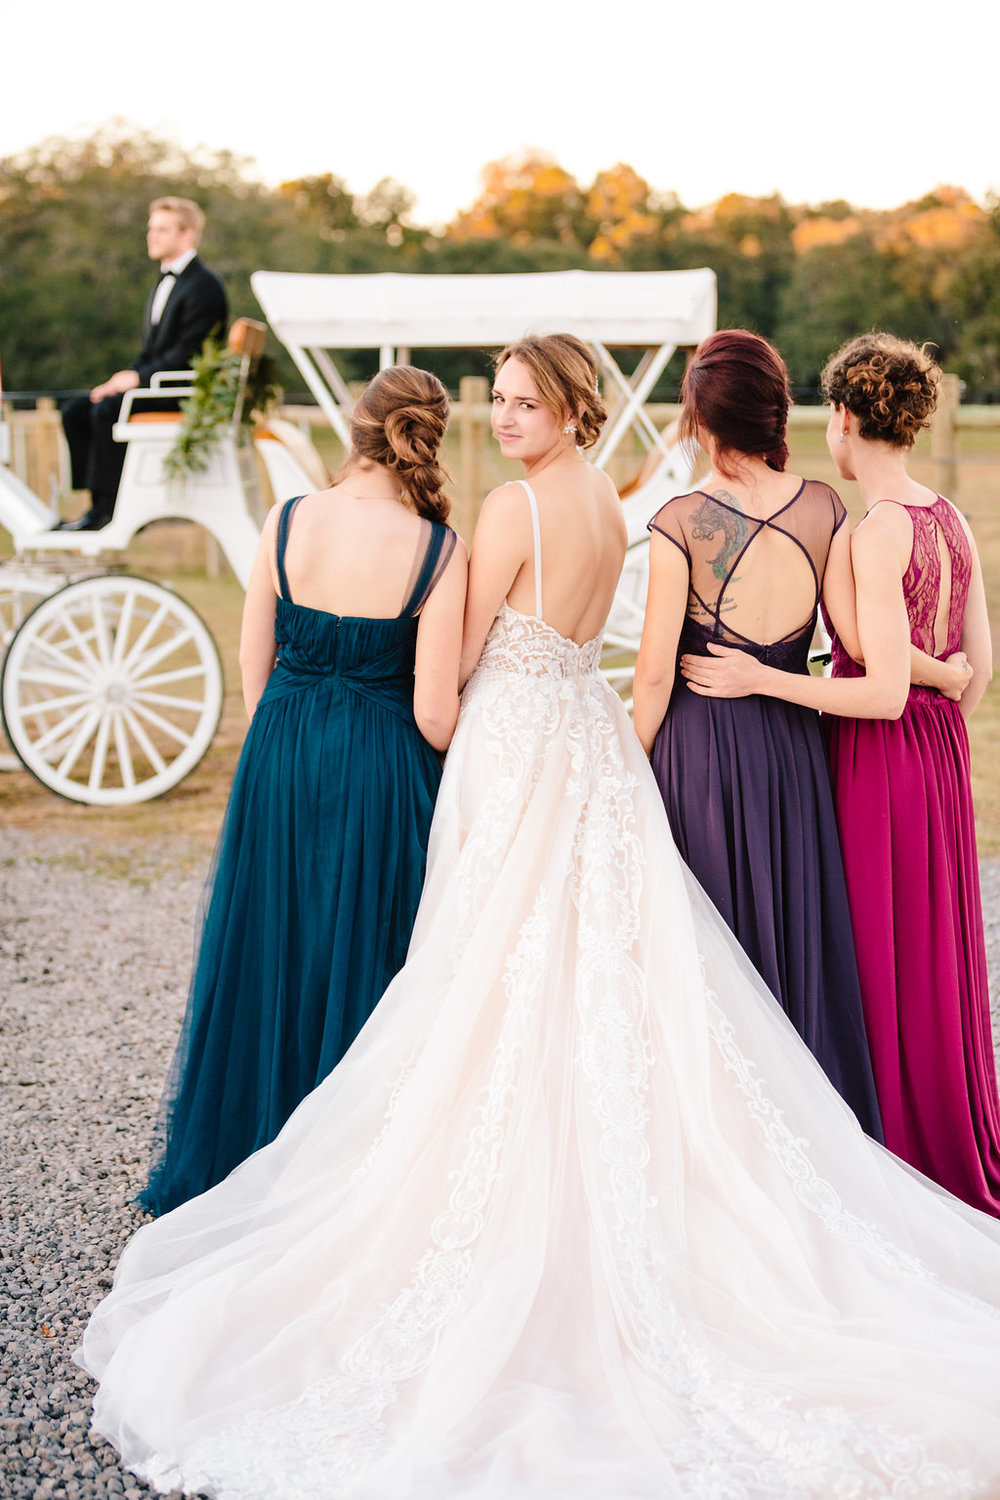 Bridesmaids in Hayley Paige dresses in front of white horse and carraige  //  Old South Carriage Company  //  Charleston wedding transportation  // Bride and her maids at Sugah Cain Plantation in front of white horse and Carriage  //  on A Lowocountry Wedding Magazine & Blog